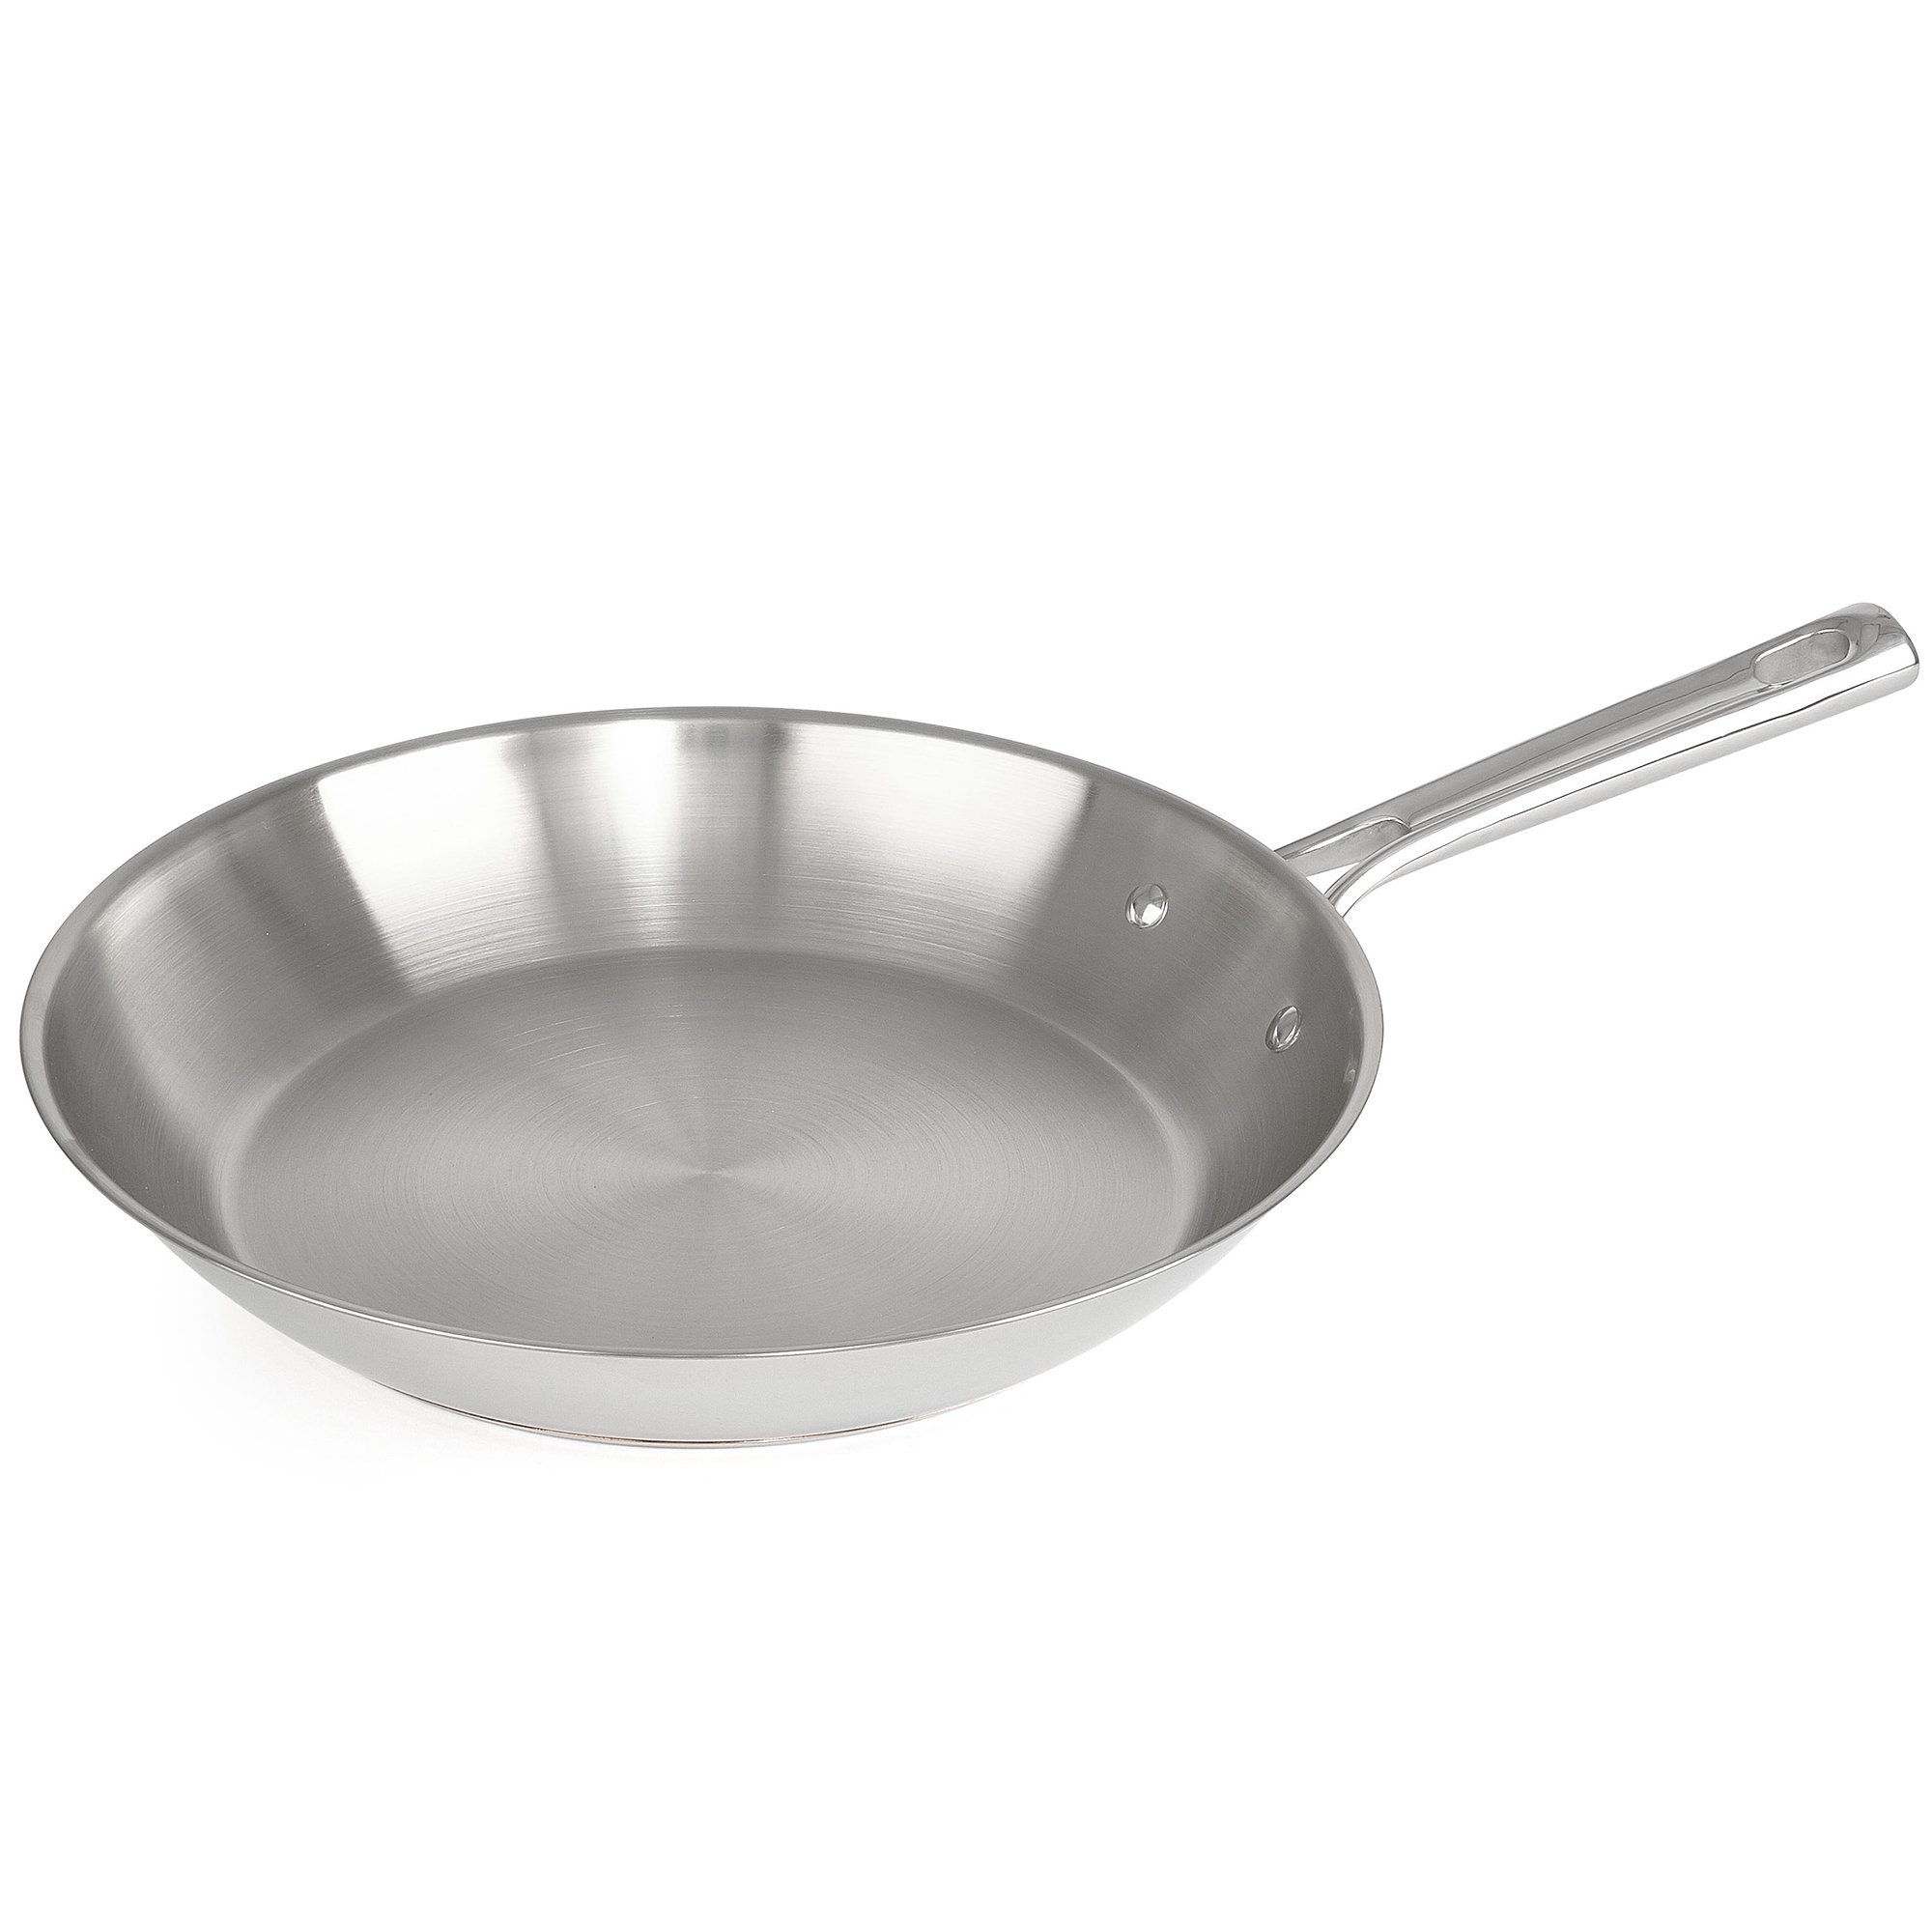 Emeril Lagasse Stainless Steel Copper Core Fry Pan, 12'', Silver